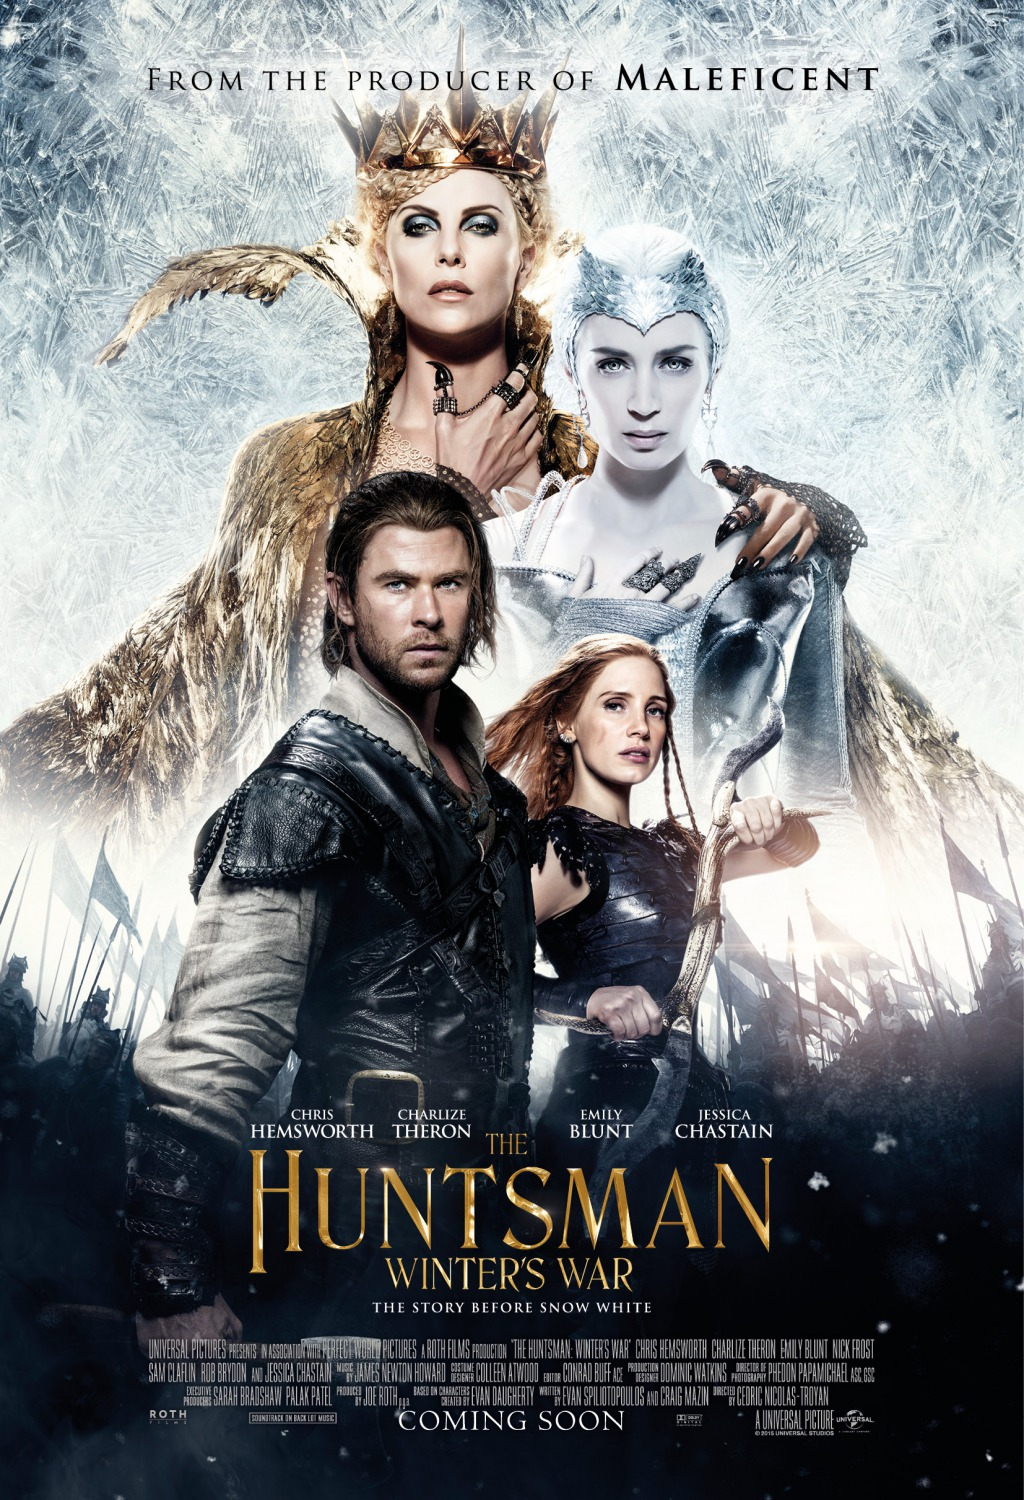 The Huntsman: Winter's War (2016) BluRay 480p, 720p, 1080p & 4K-2160p